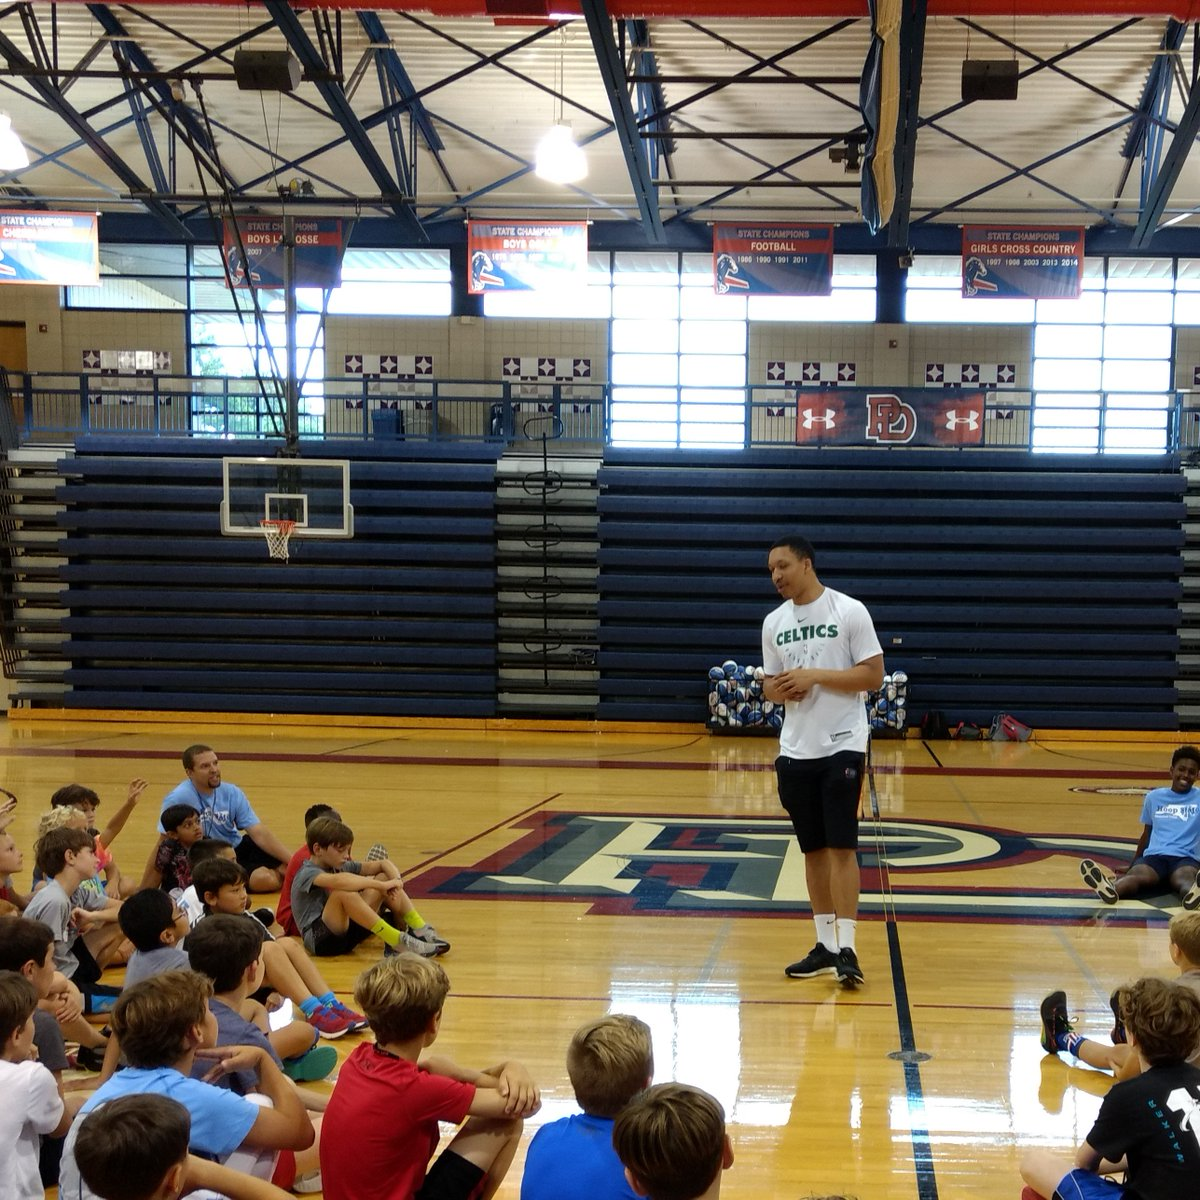 """Welcome Home Grant Williams! Great message for our young and older Chargers alike. """"Respect and listen to your coaches, always thank your parents and surround yourself with good people."""" @suefitzgerald1 #pdschargers #alwaysACharger"""